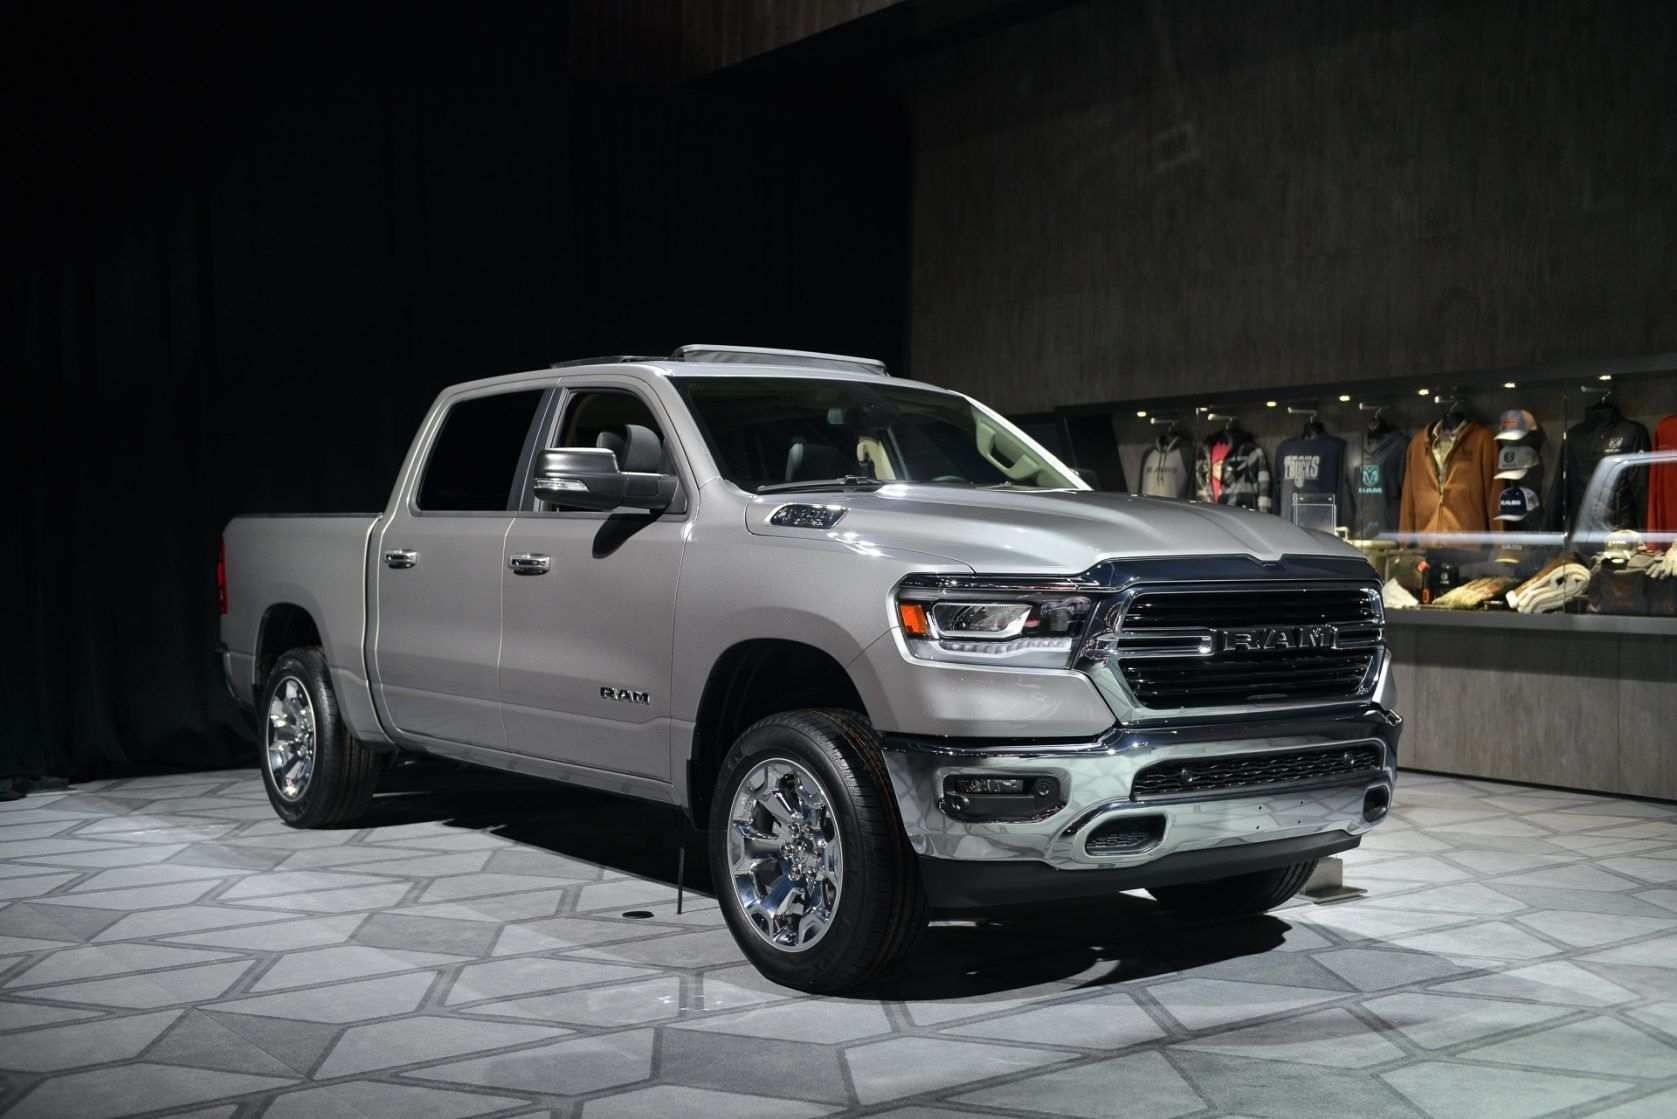 86 Gallery of Best Dodge 2019 Limited Spy Shoot Pictures for Best Dodge 2019 Limited Spy Shoot